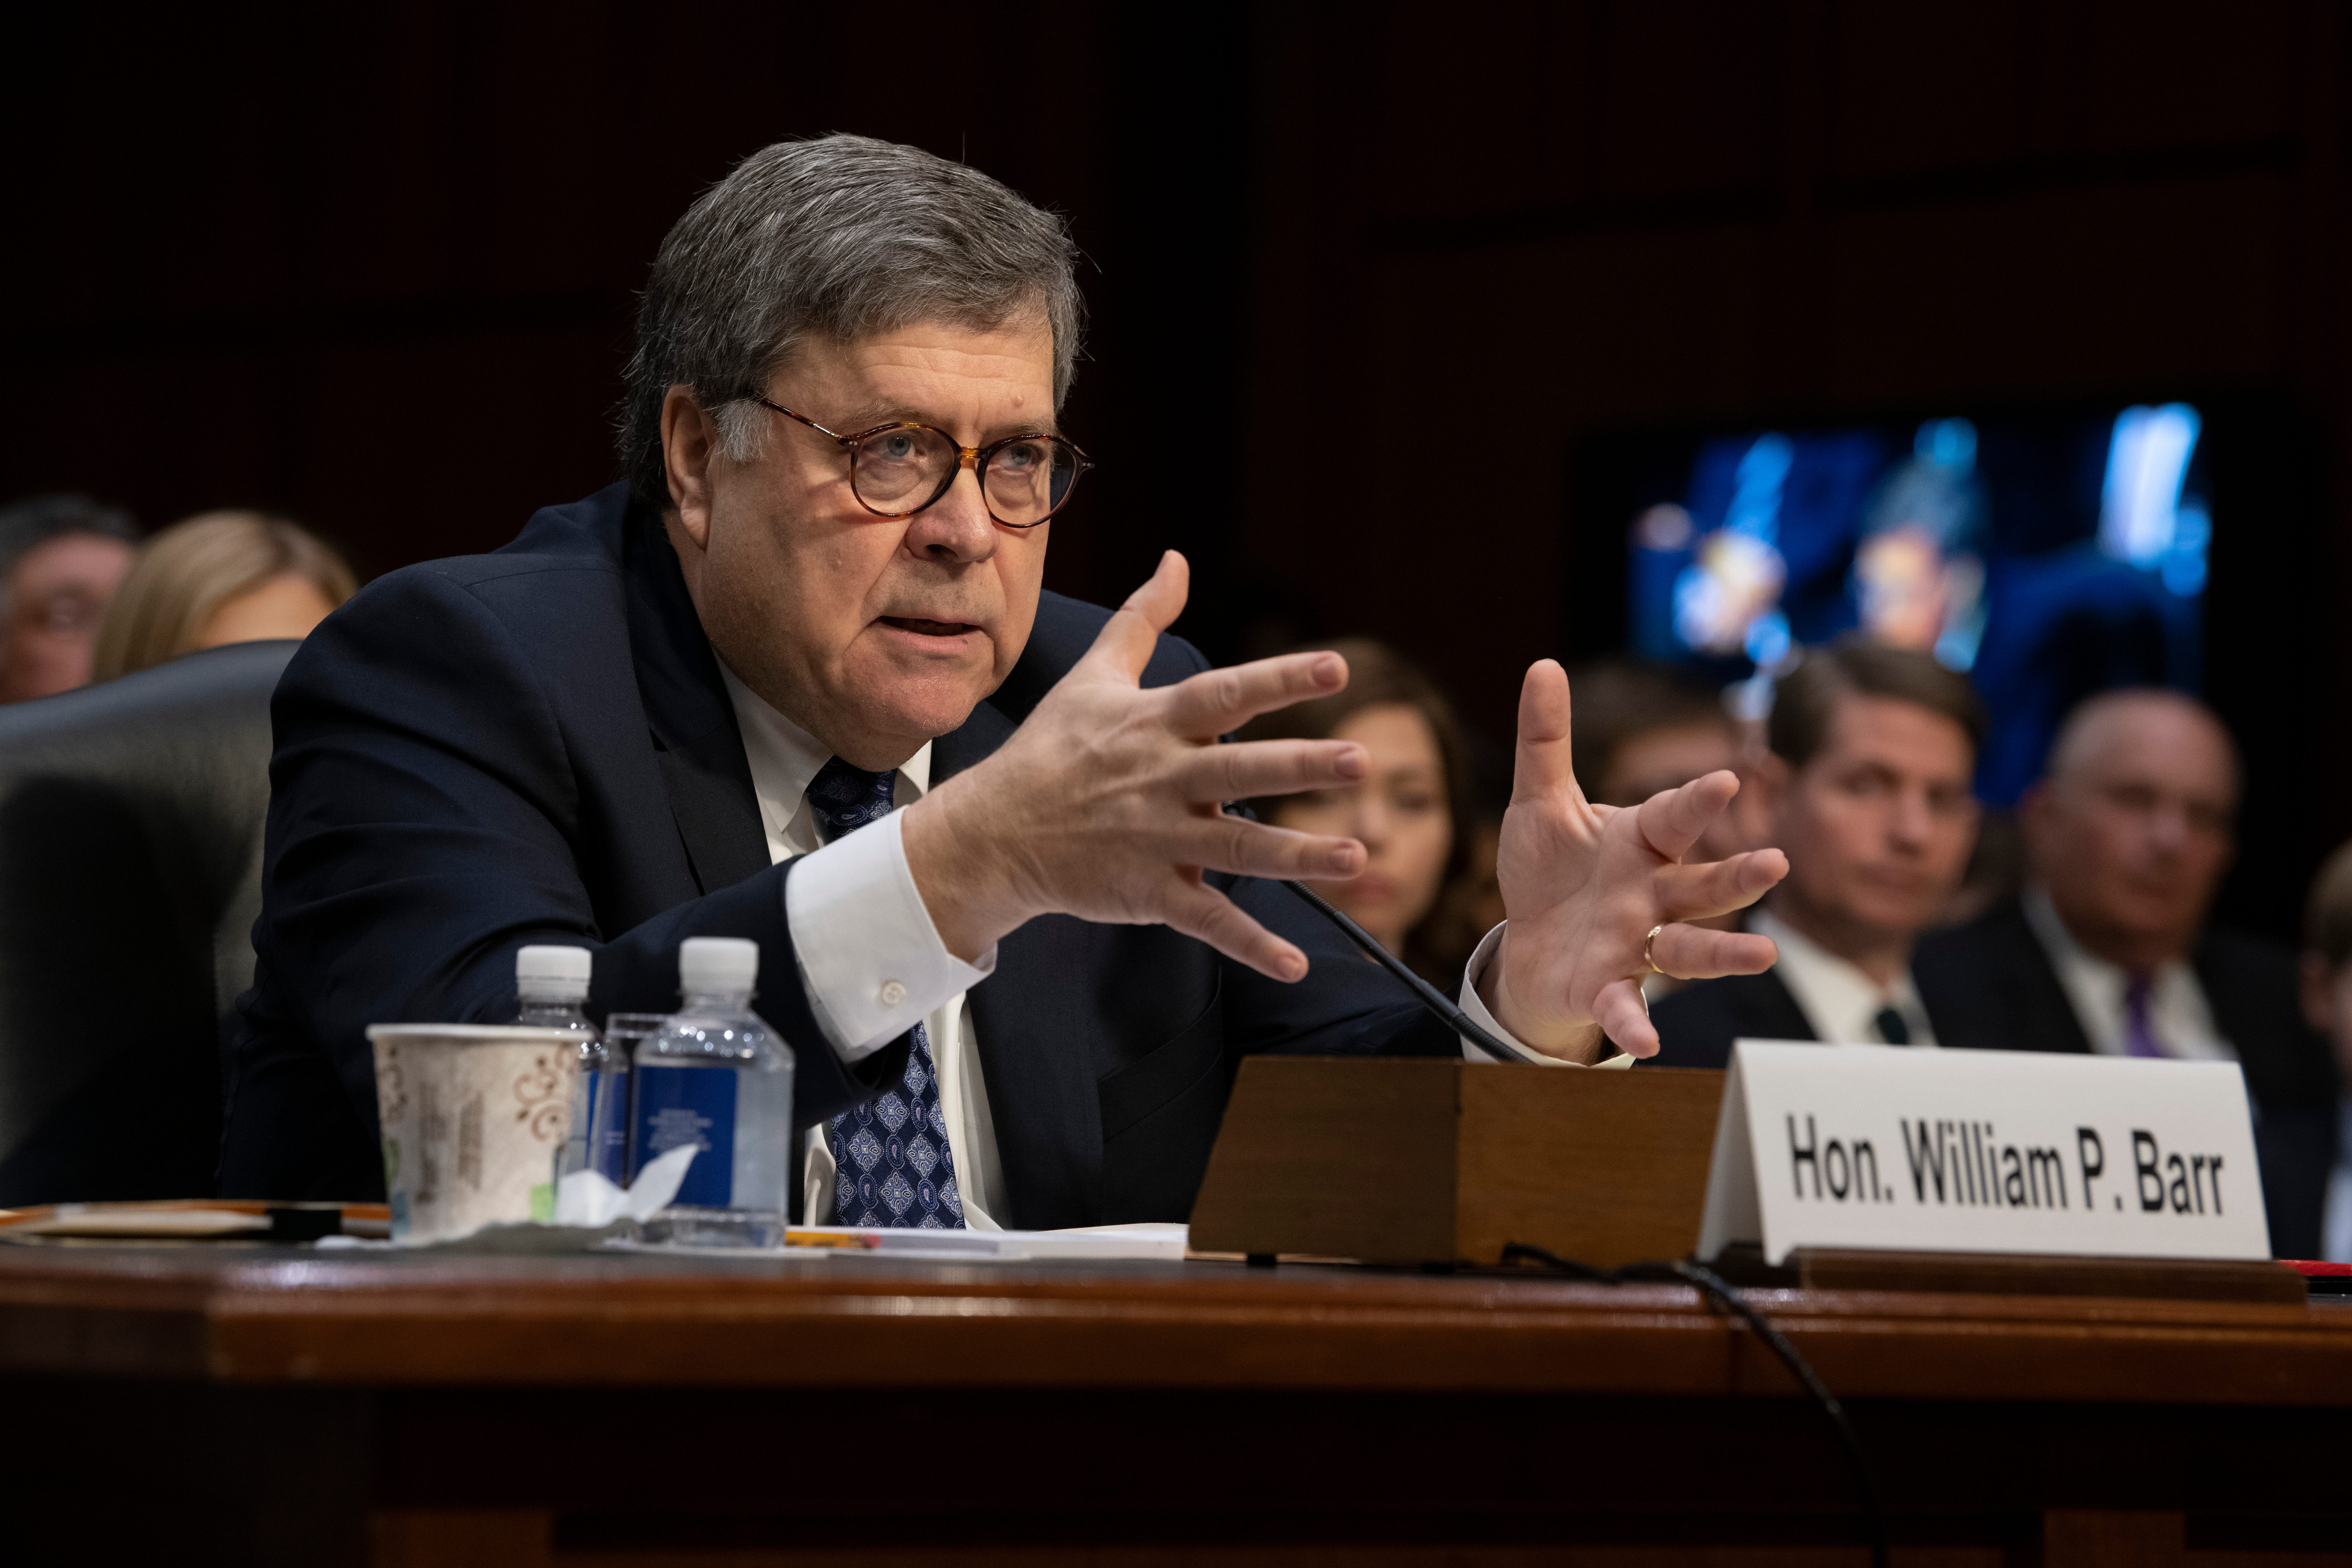 Follow live blog: Attorney general nominee Barr tells senators he doesn't think Mueller would pursue 'witch hunt'